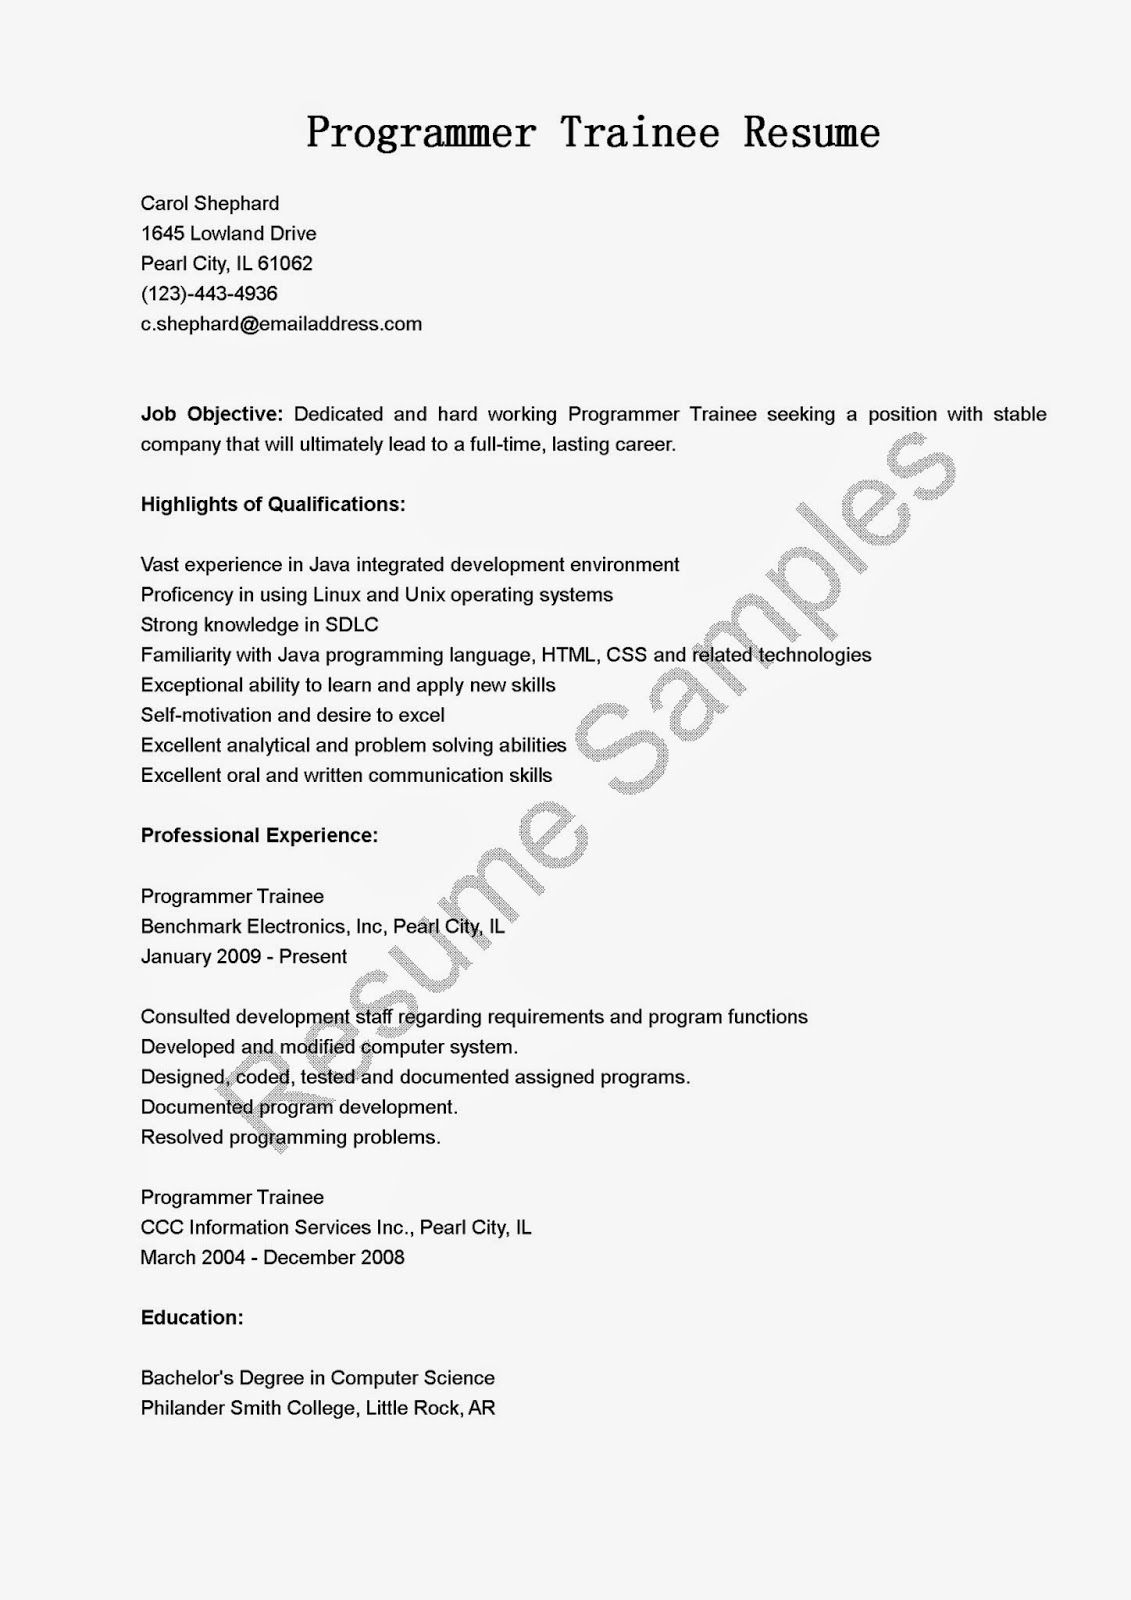 Fine 1 Page Resume Format Huge 1 Page Resumes Examples Square 10 Best Resumes 10 Envelope Template Youthful 10 Label Template Red100 Free Printable Resume Builder Lead Software Qa Engineer Resume   Vosvete